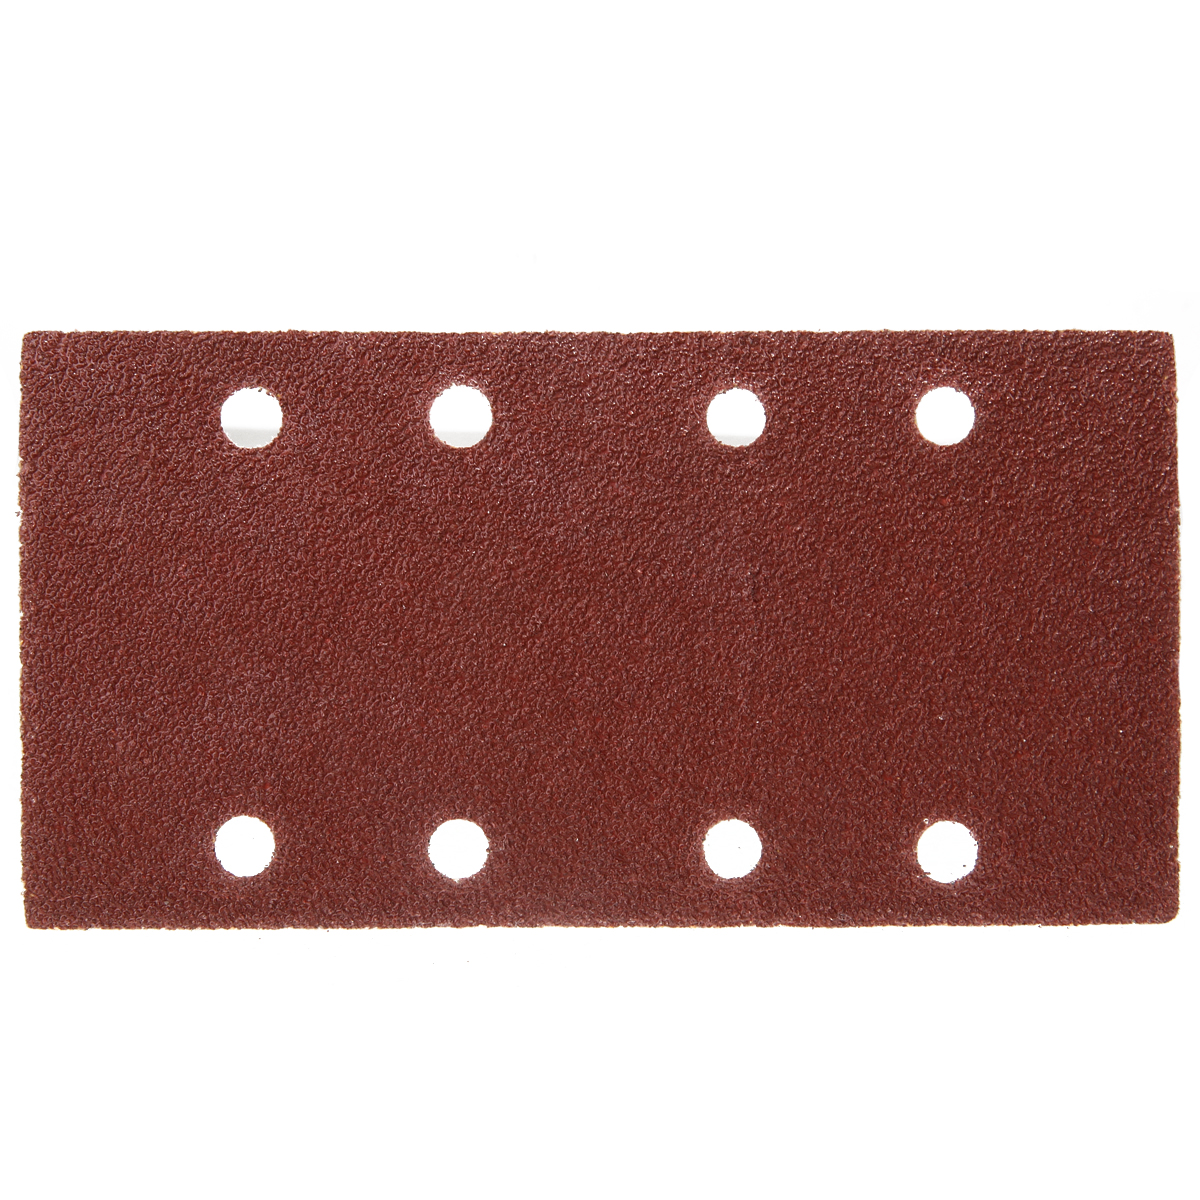 50pcs 8 Holes Sand Paper Sheets Rectangle Brown Sandpaper for Polishing Swing Grinder 40 120 Grit Orbital Sanders Tools 93*185mm-in Abrasive Tools from Tools